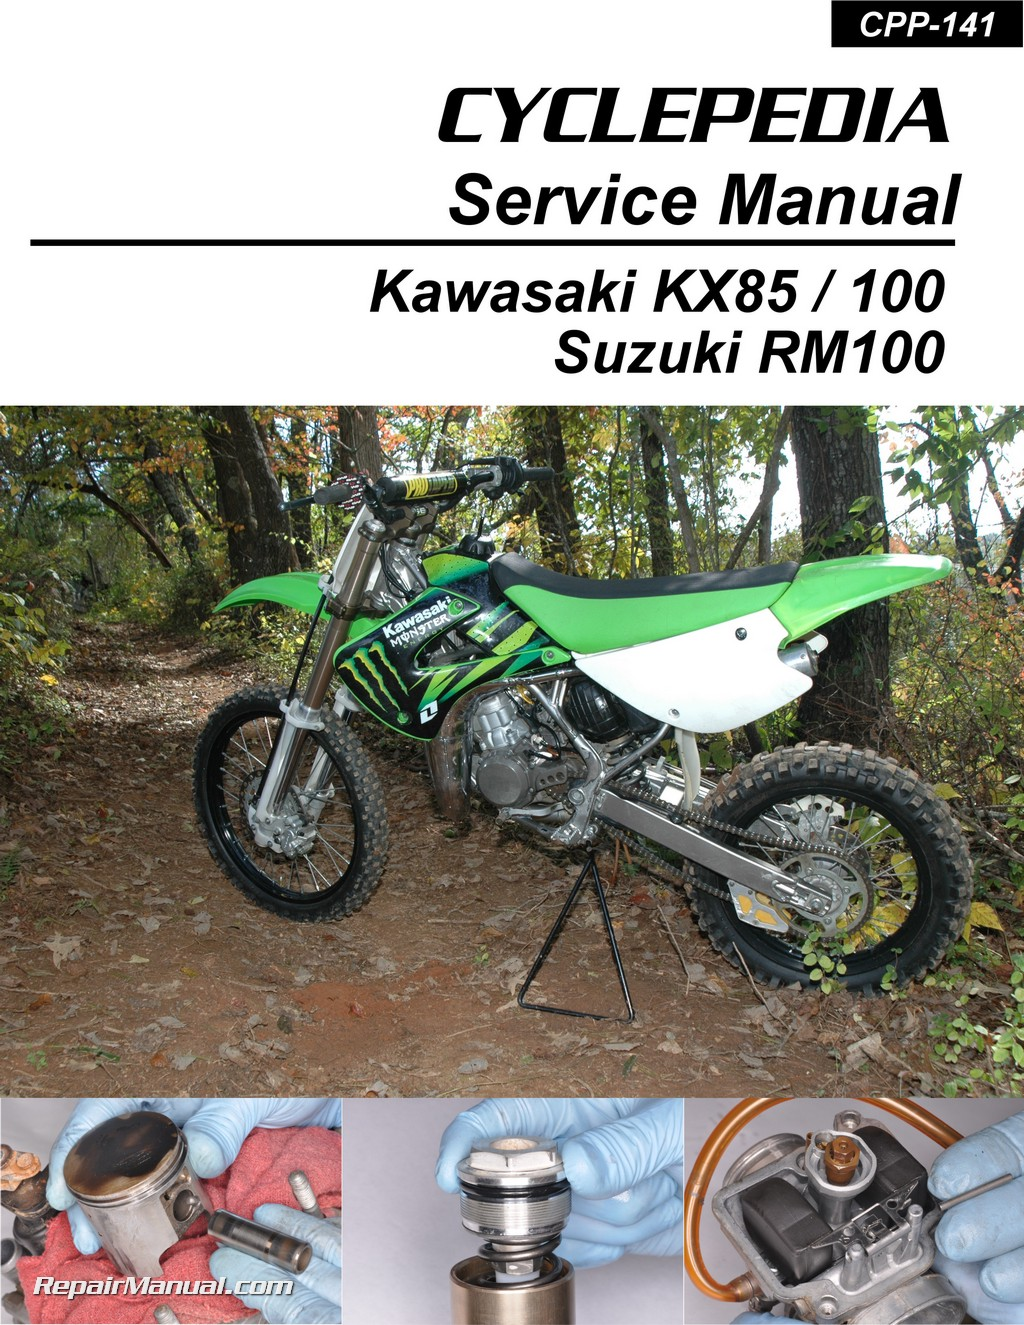 Kawasaki KX85 KX100 Suzuki RM100 Cyclepedia Printed Motorcycle Service  Manual